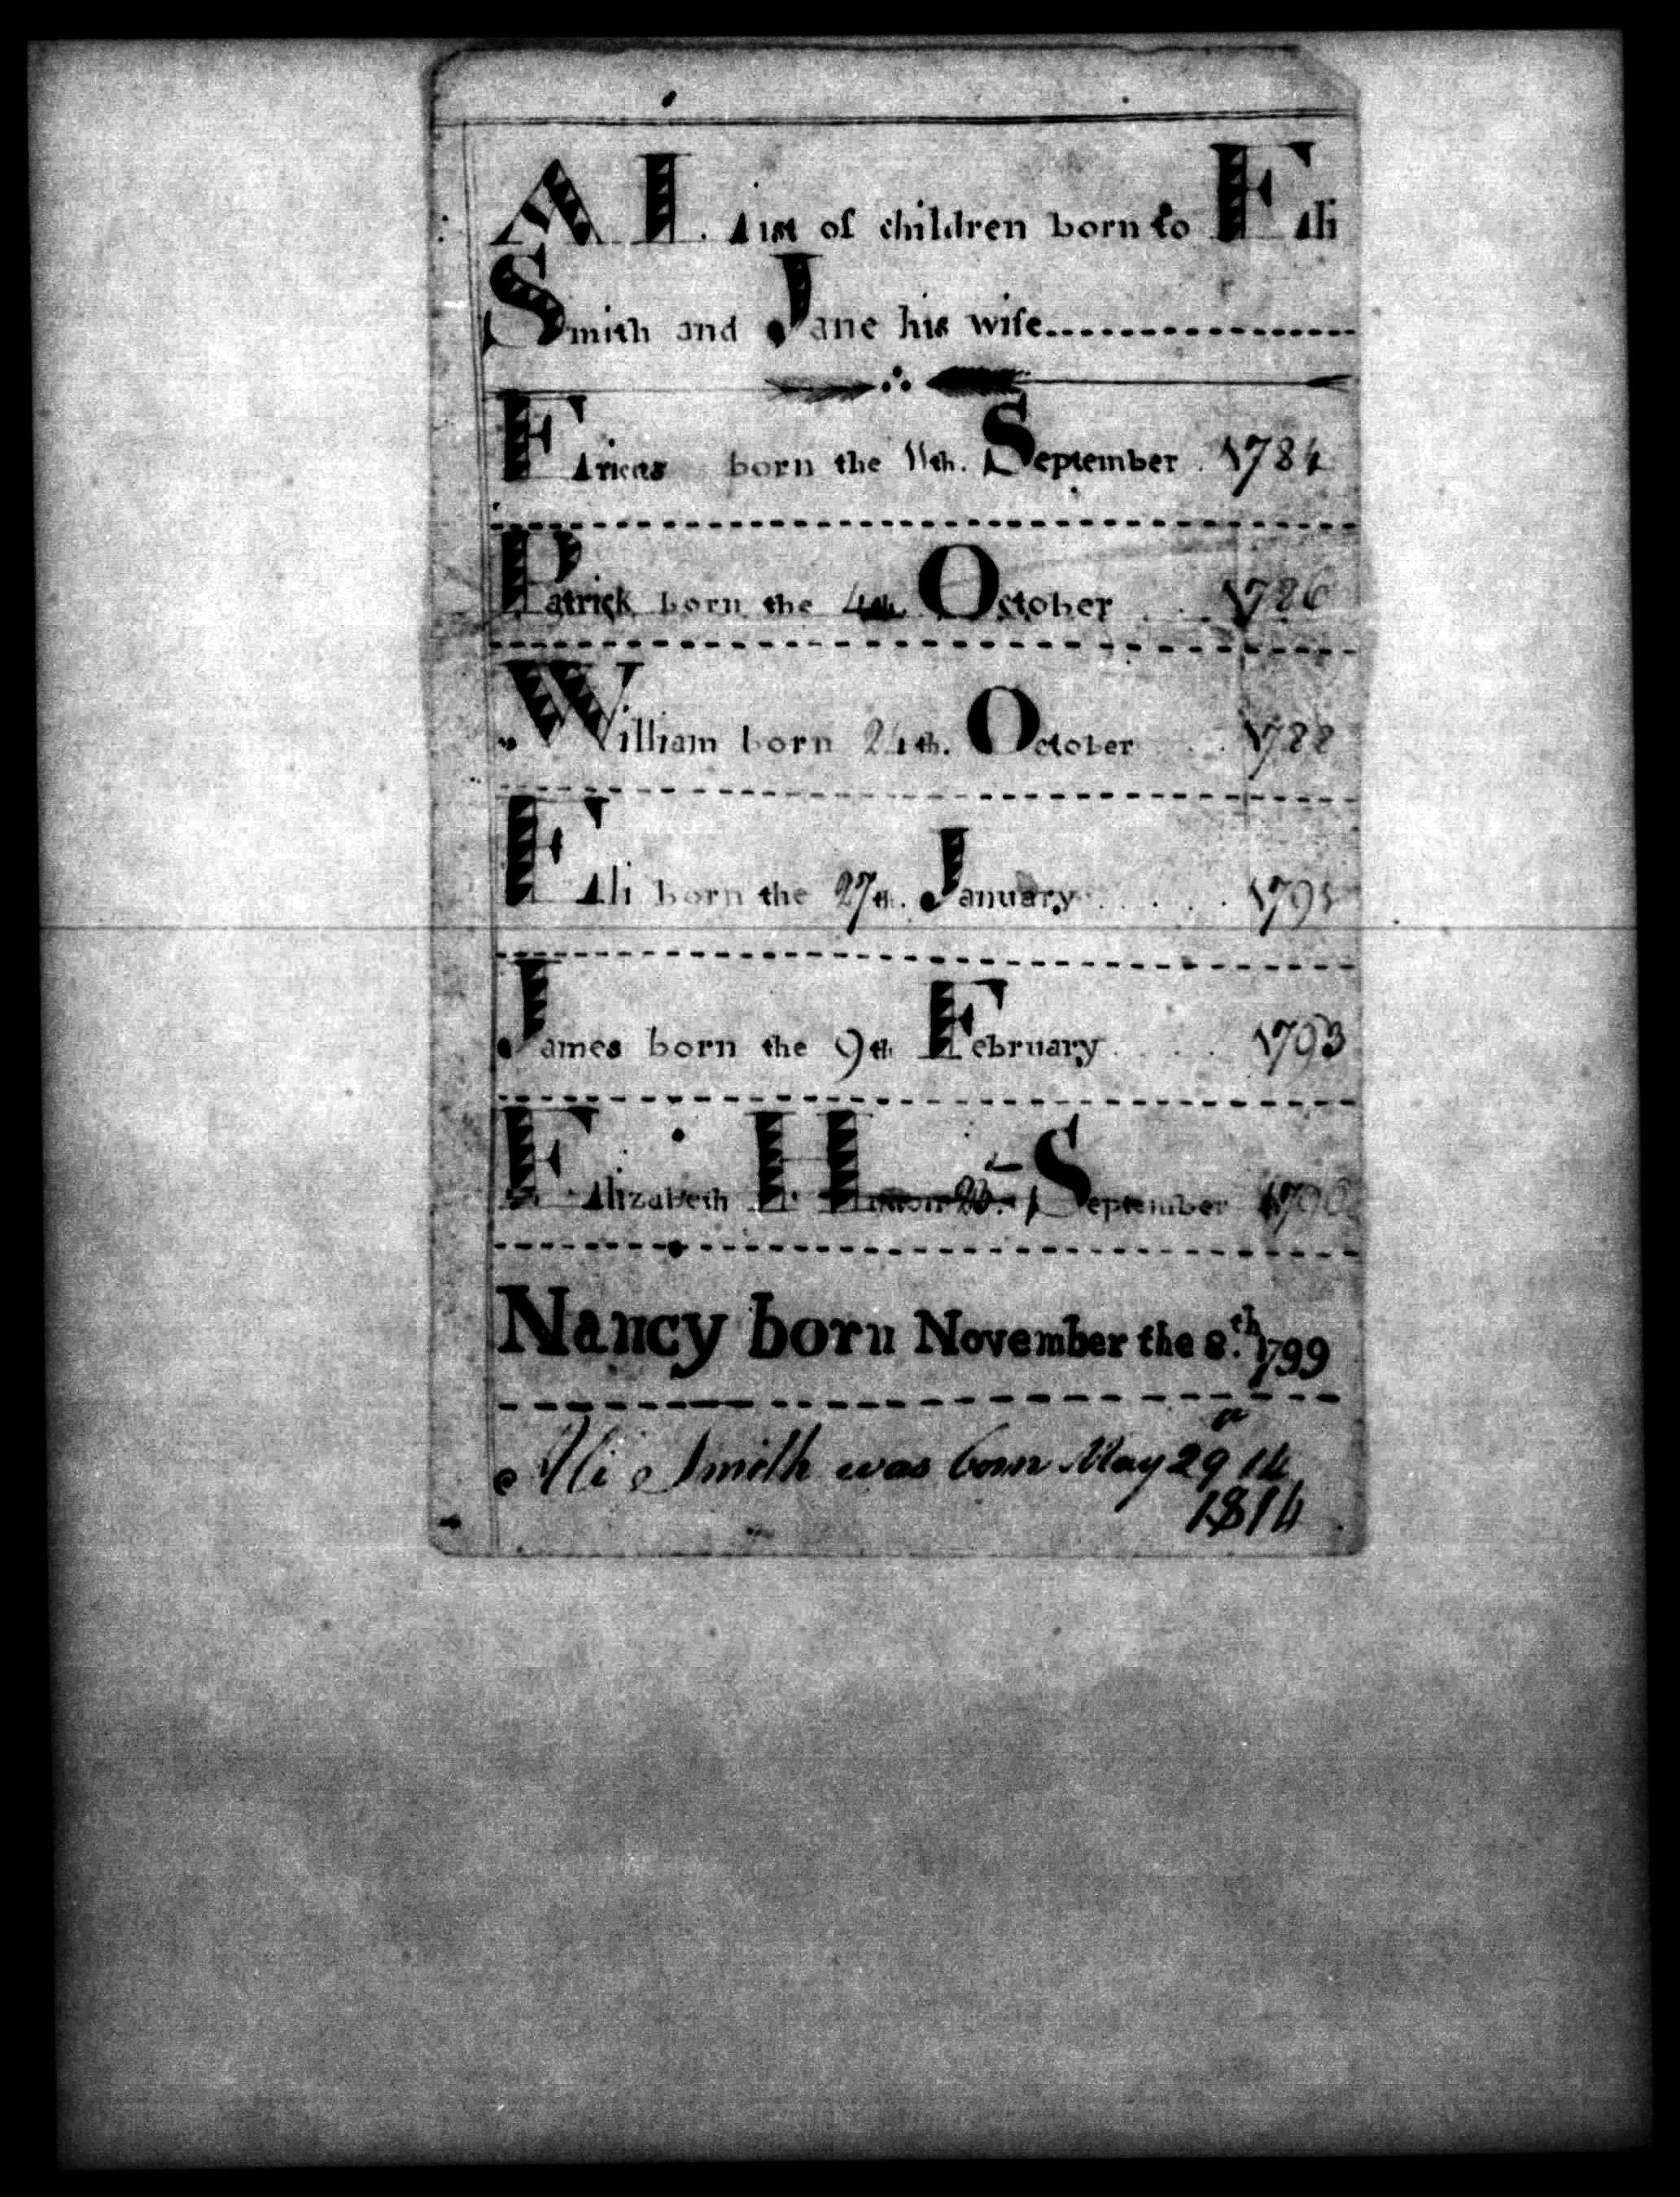 Bible page of the Eli (Ali) Smith family